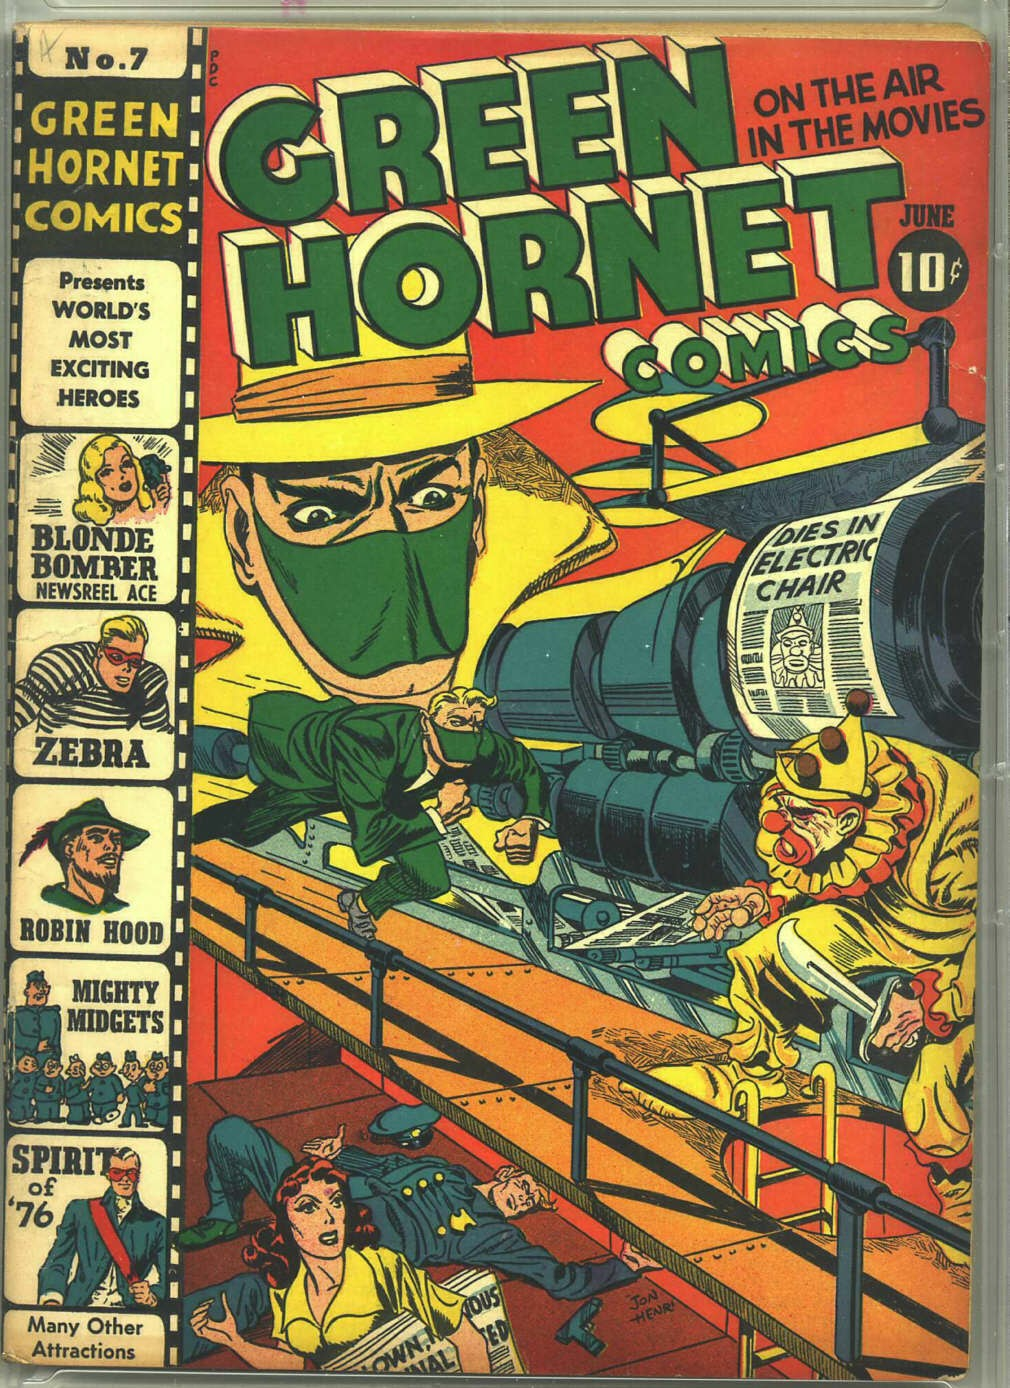 Green Hornet Comics issue 7 - Page 1